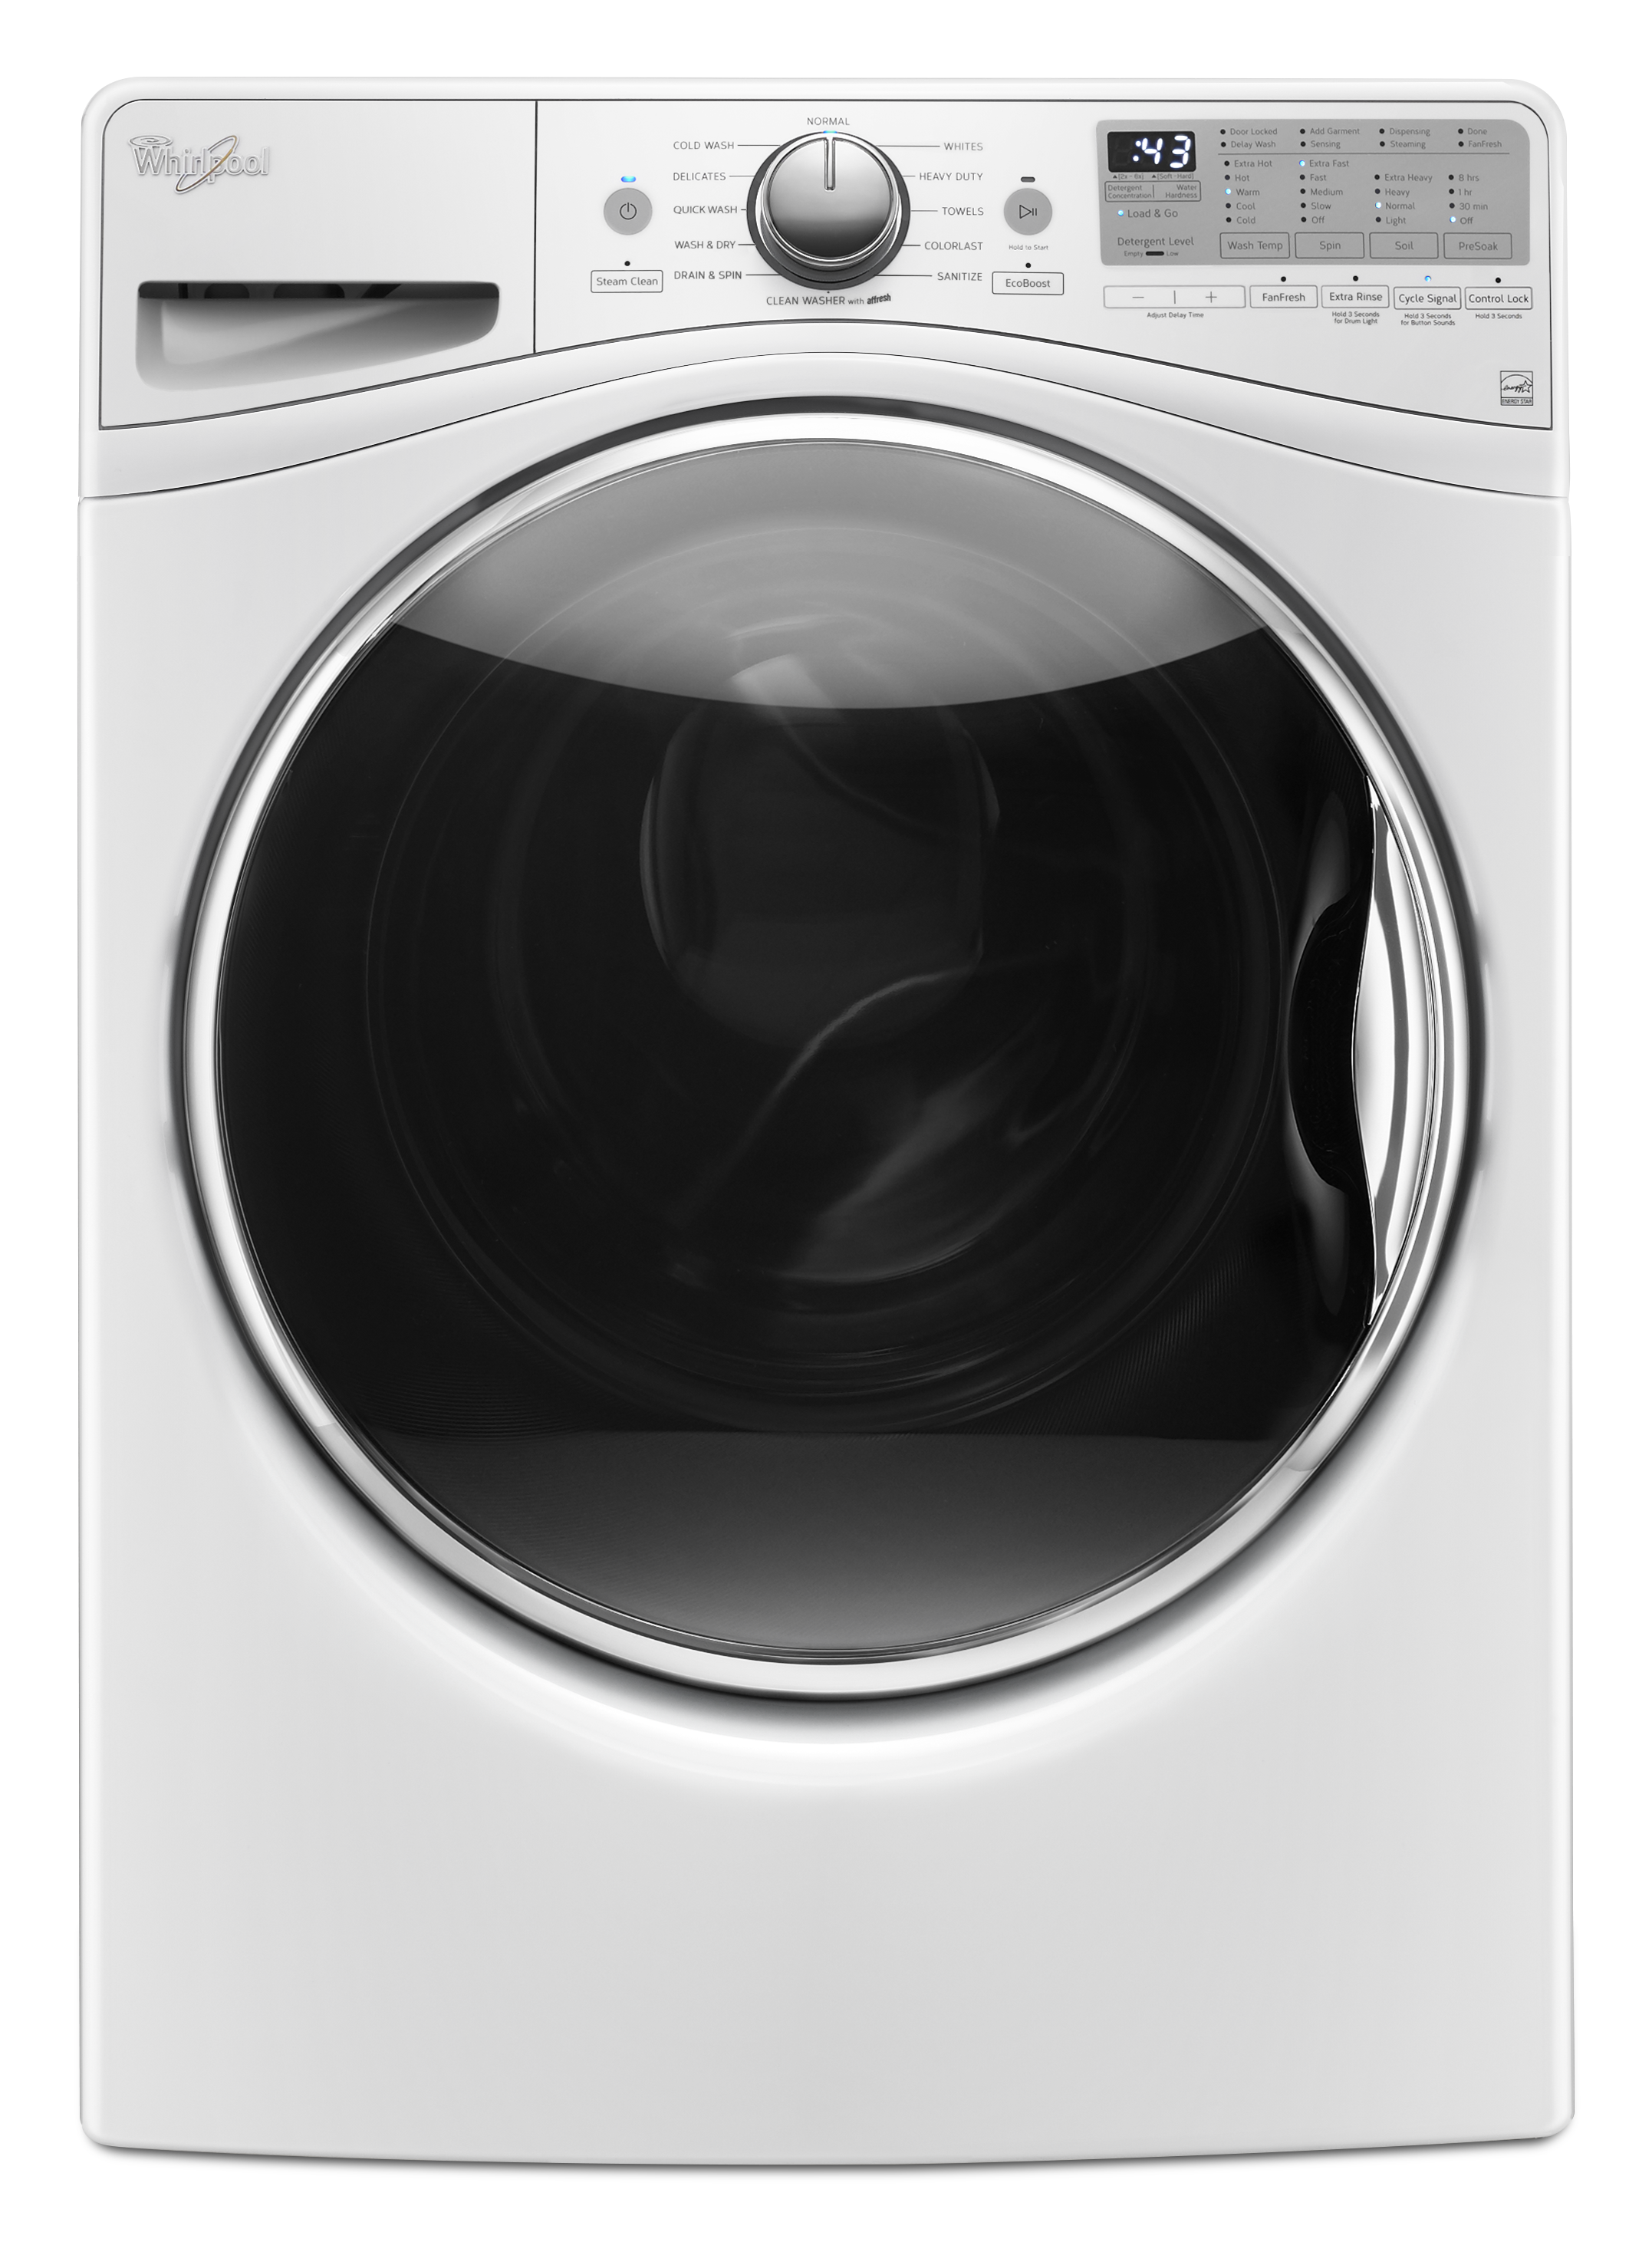 stackable whirlpool washer ideas design home size duet merveilleux of dryer best apartment and pedestal